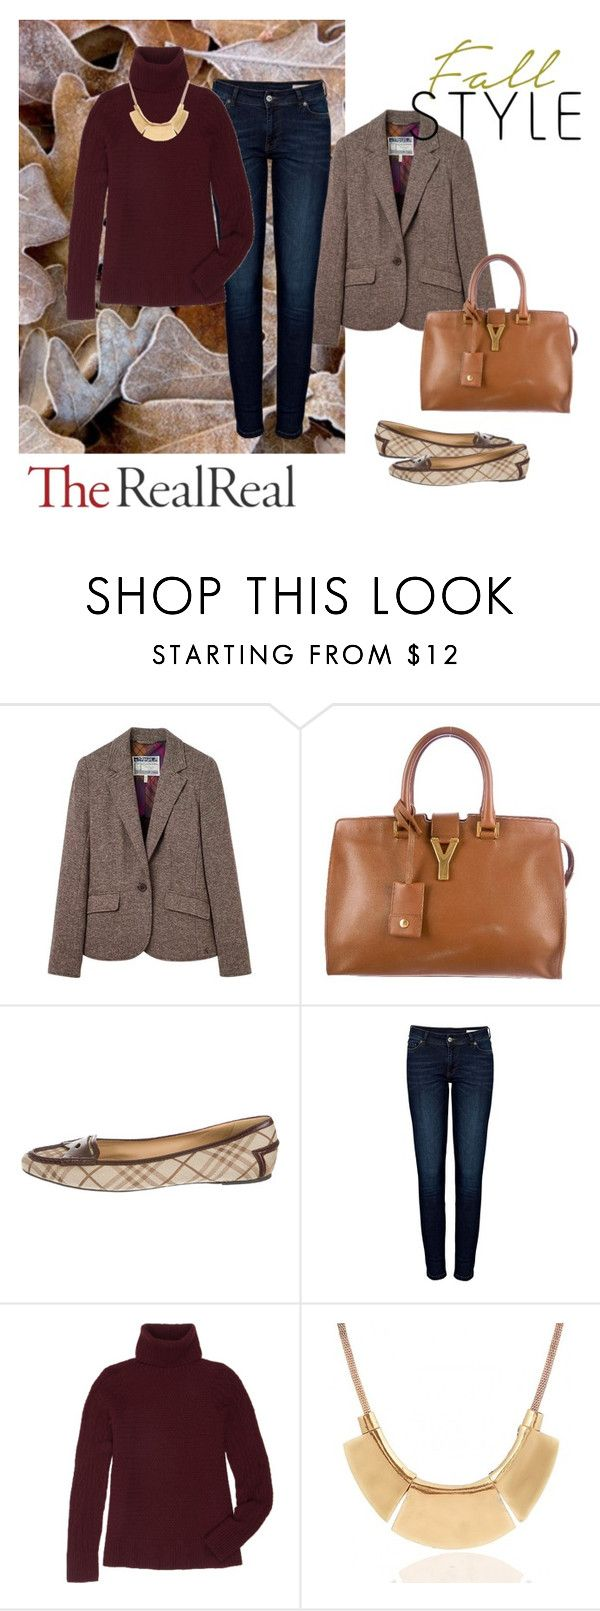 """""""Fall Style With The RealReal: Contest Entry"""" by lunkhead on Polyvore featuring Joules, Yves Saint Laurent, Burberry, Anine Bing and The Row"""